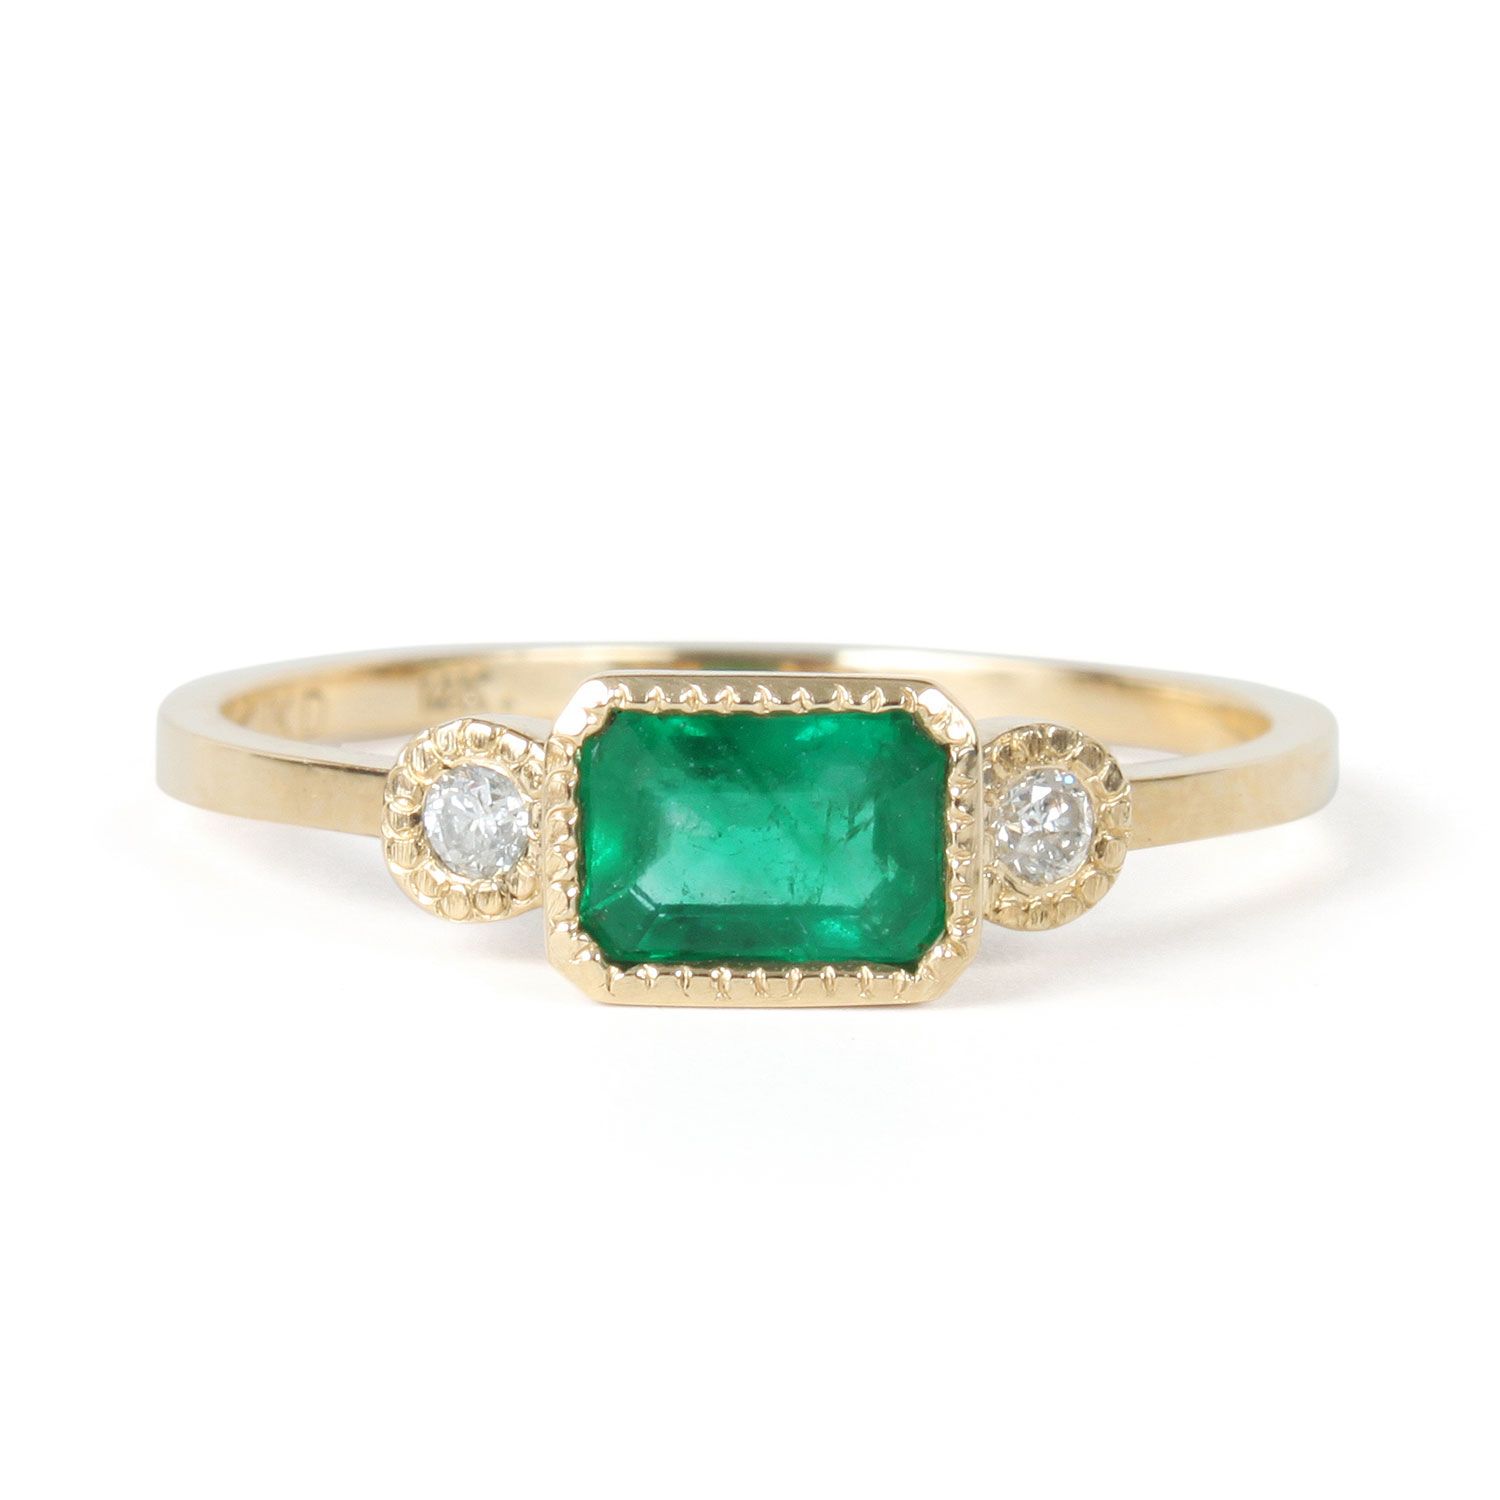 ring a products engagement emerald with rings diamond small gemstone asymmetric